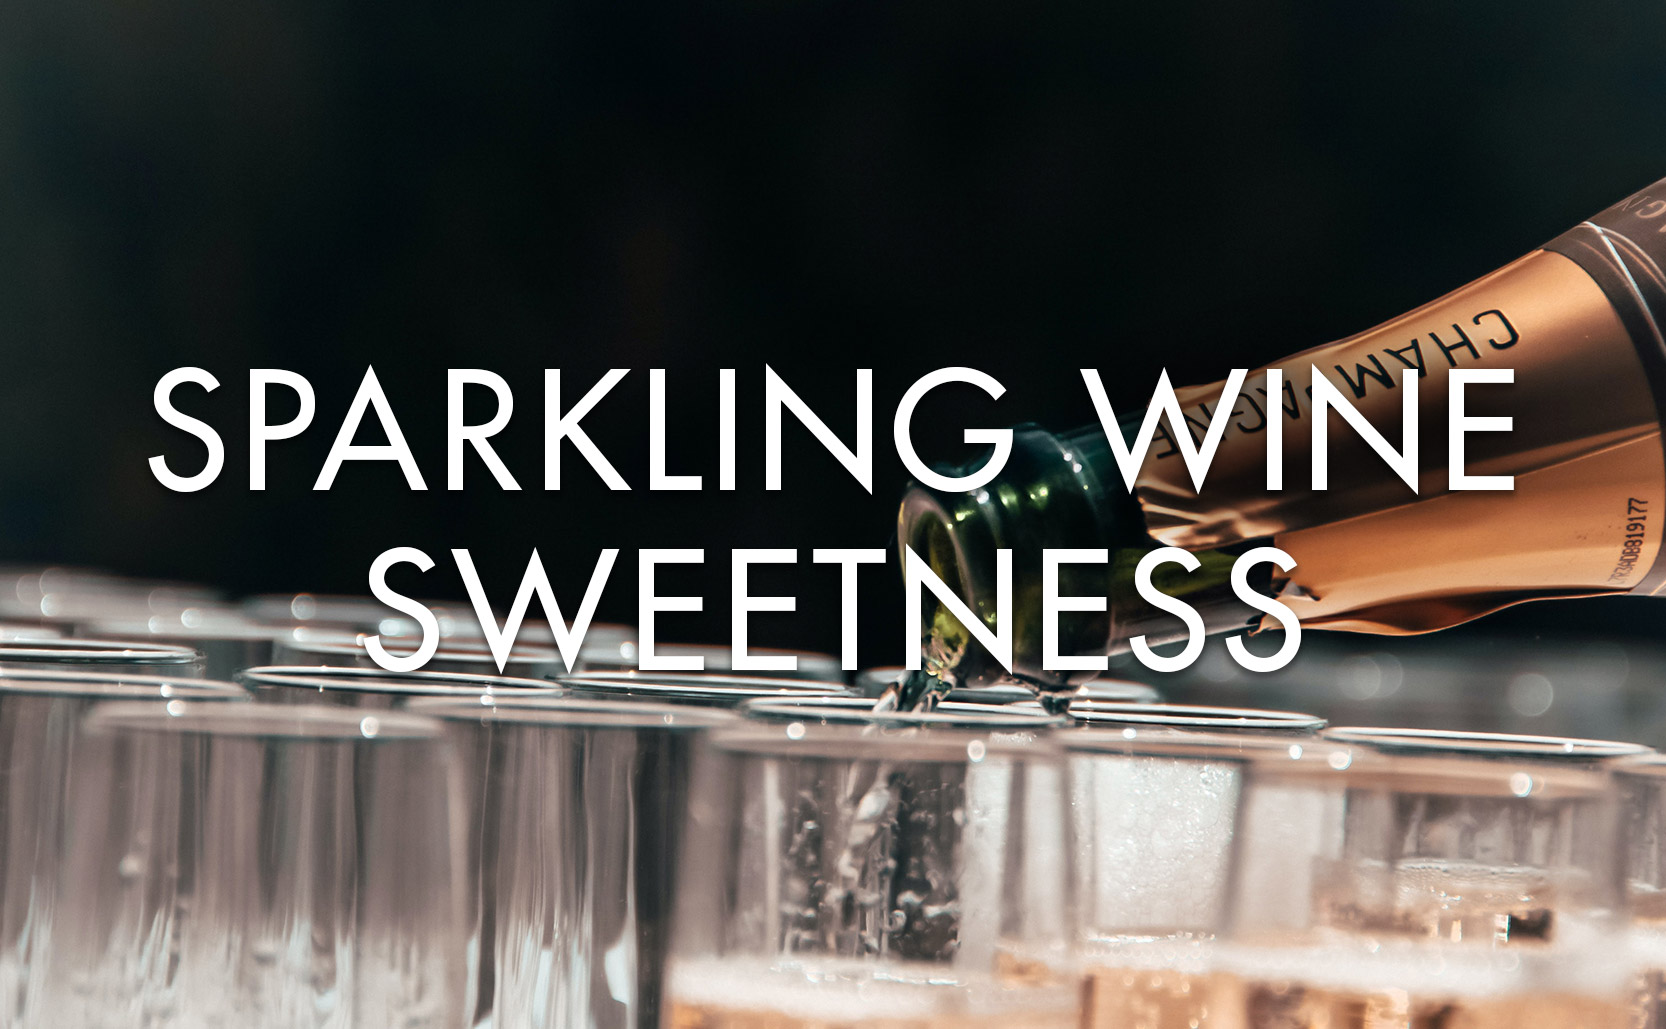 You are currently viewing Sparkling Wine Sweetness